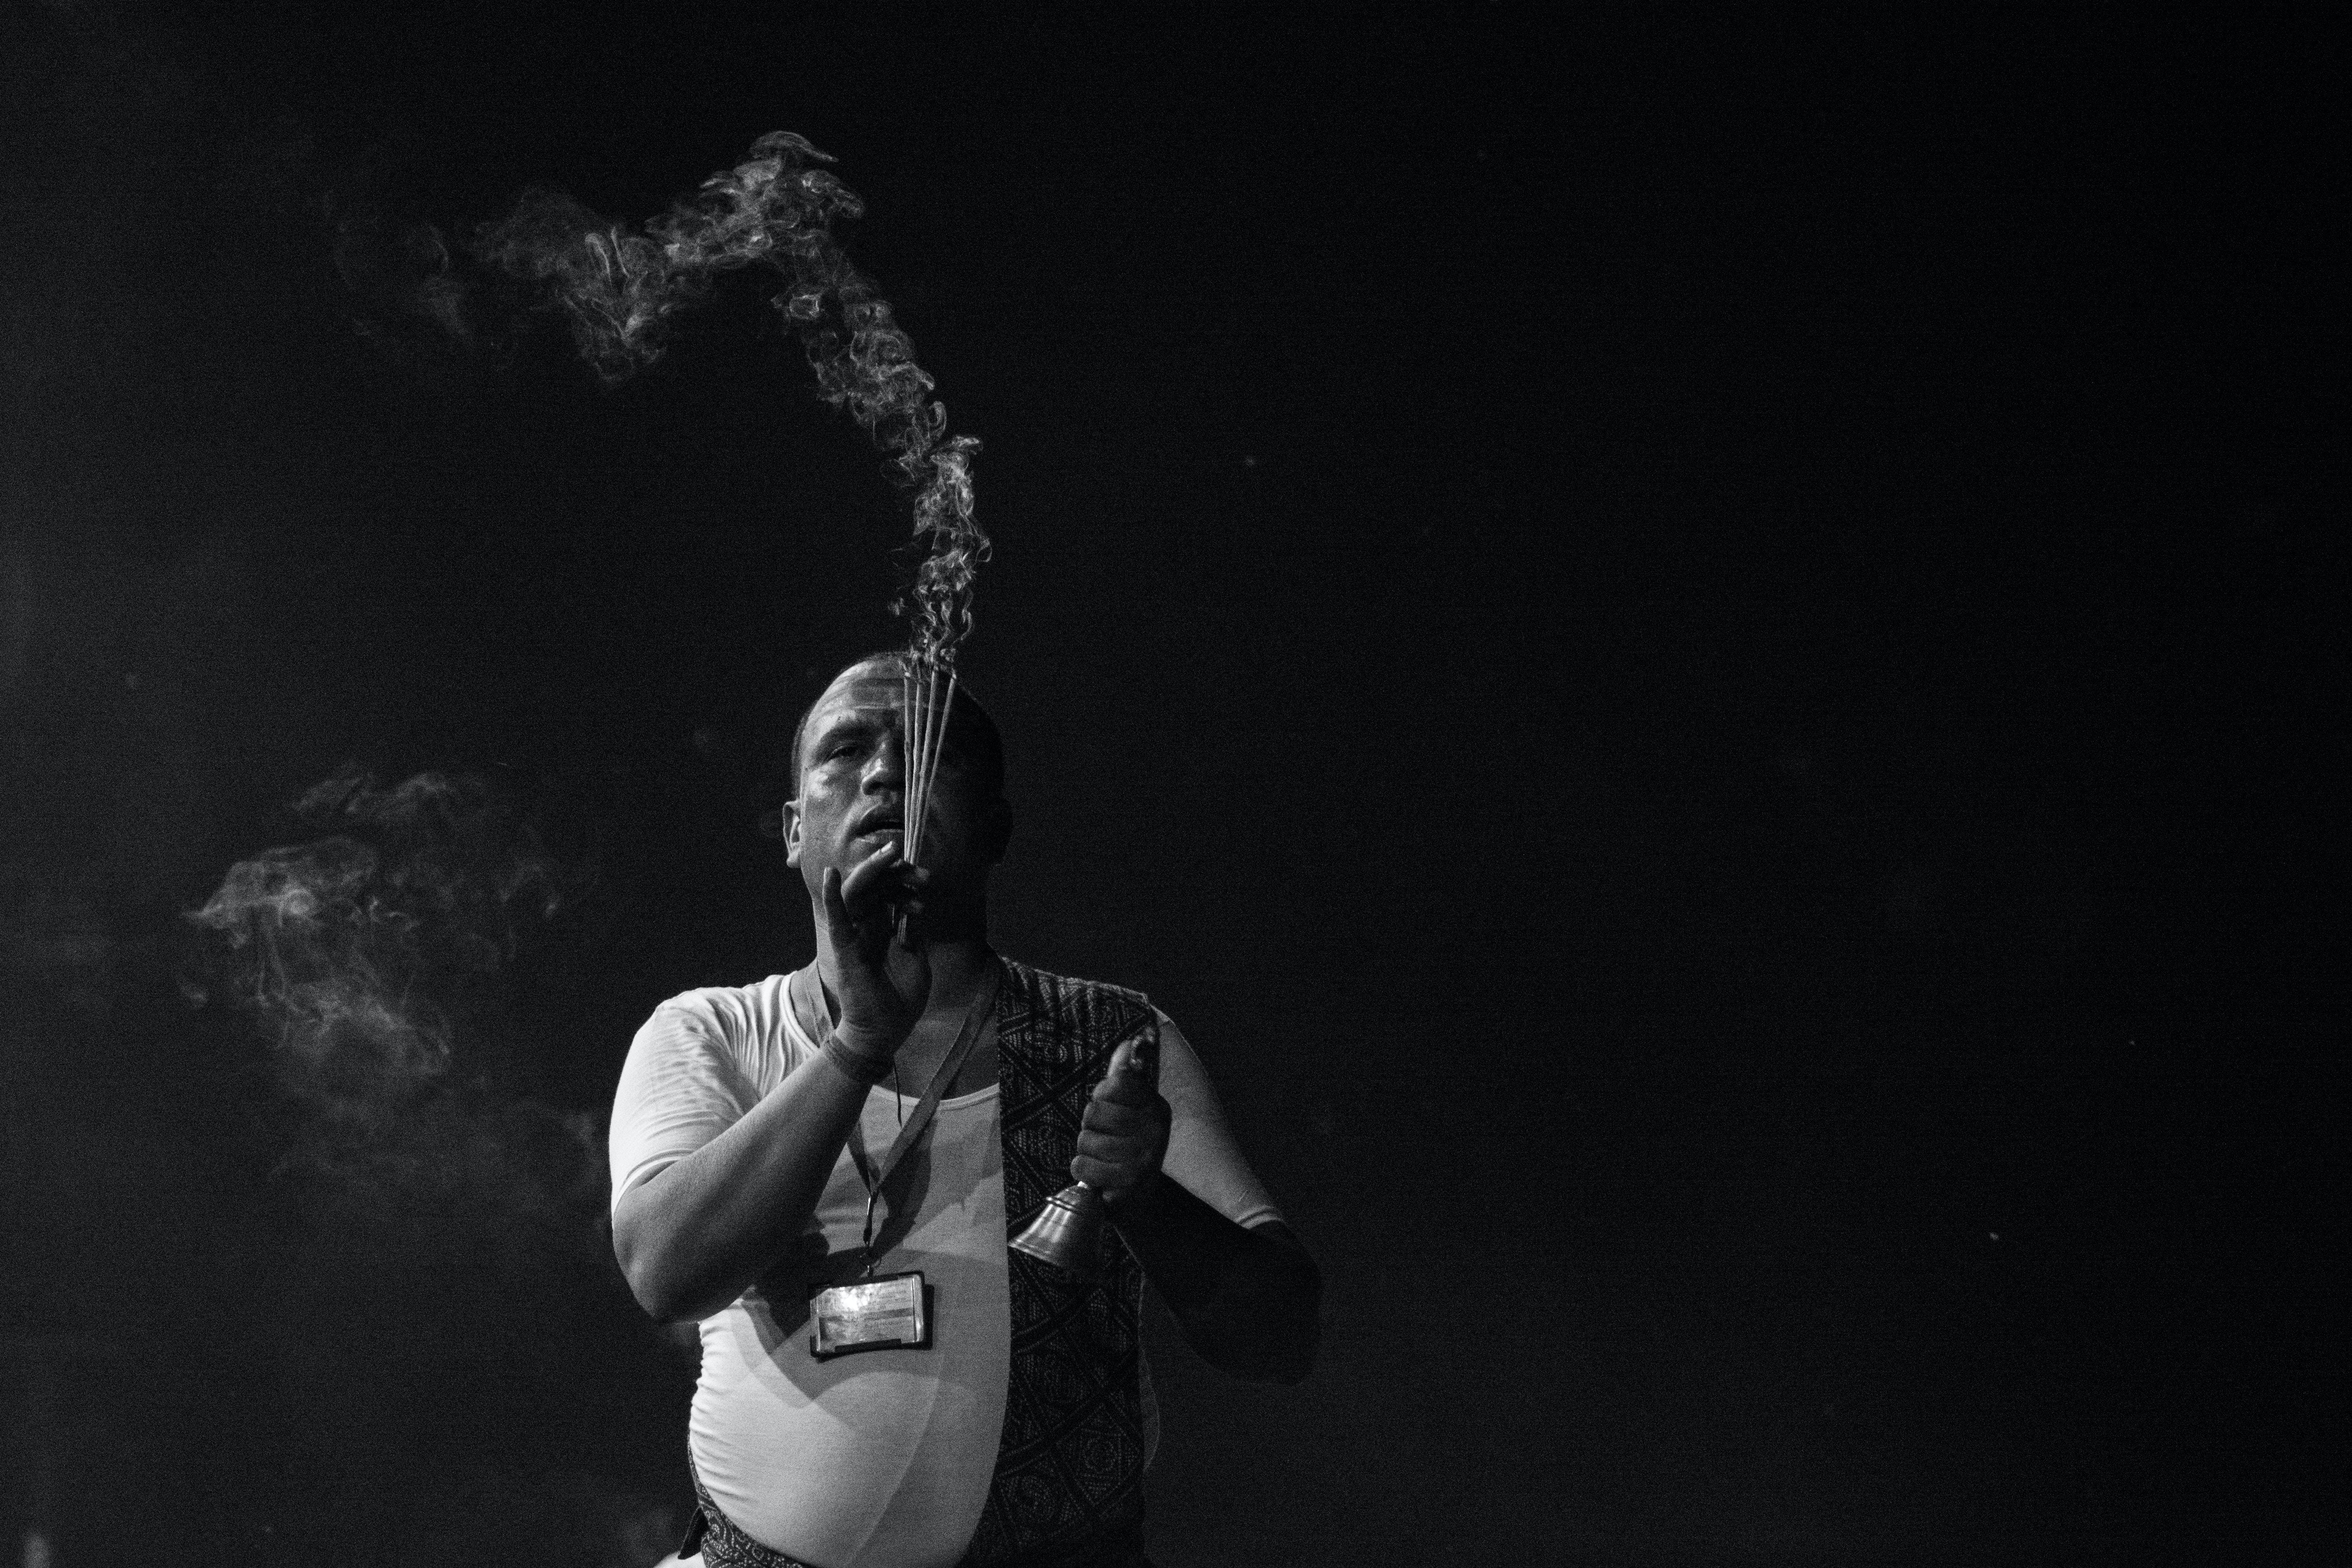 Man Holding Incense